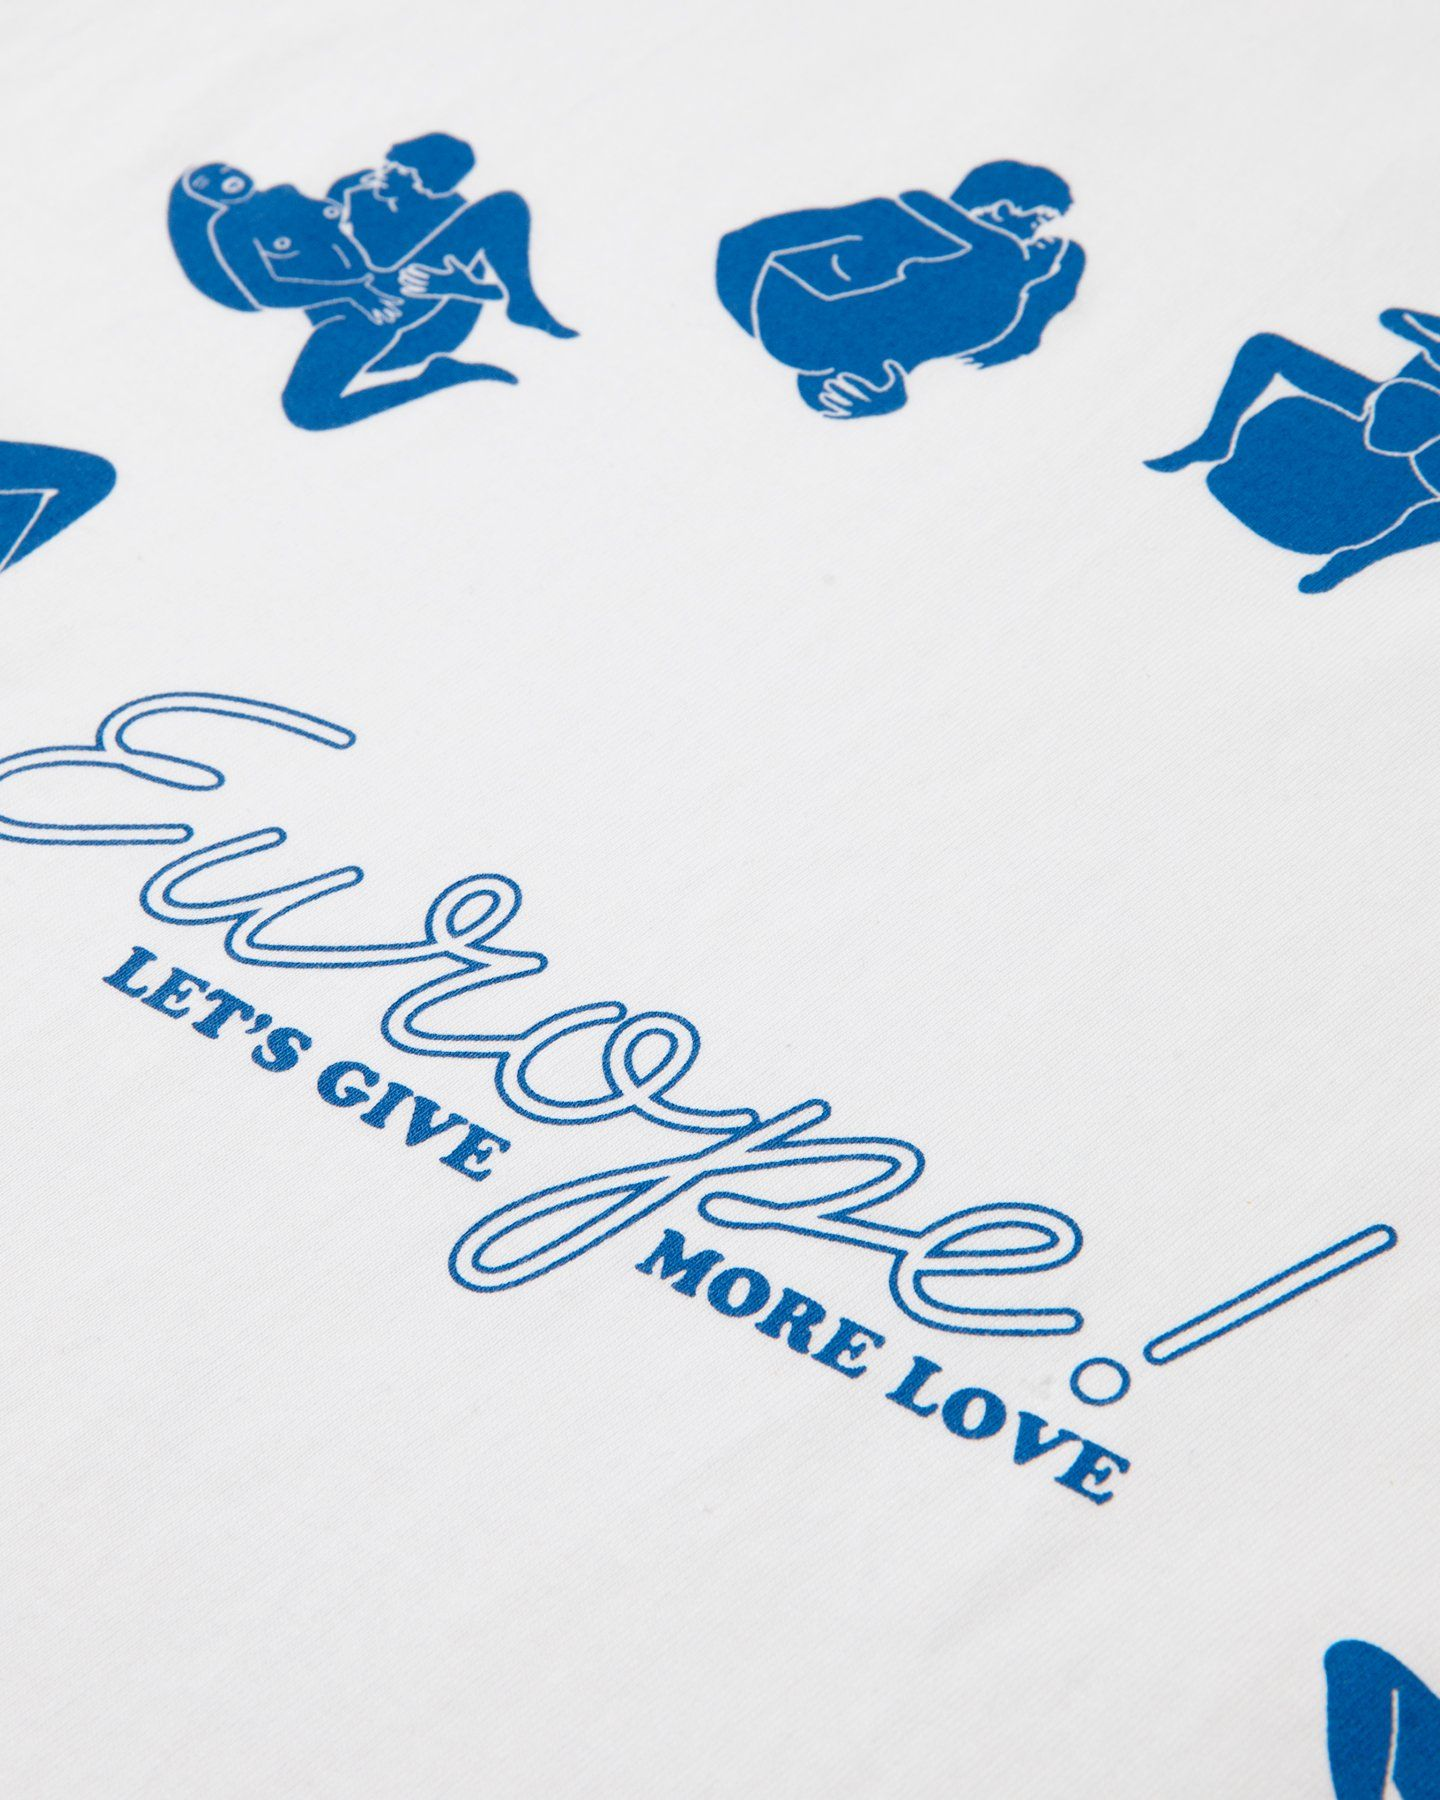 Carne Bollente Let's Give More Love T-Shirt - Image 4